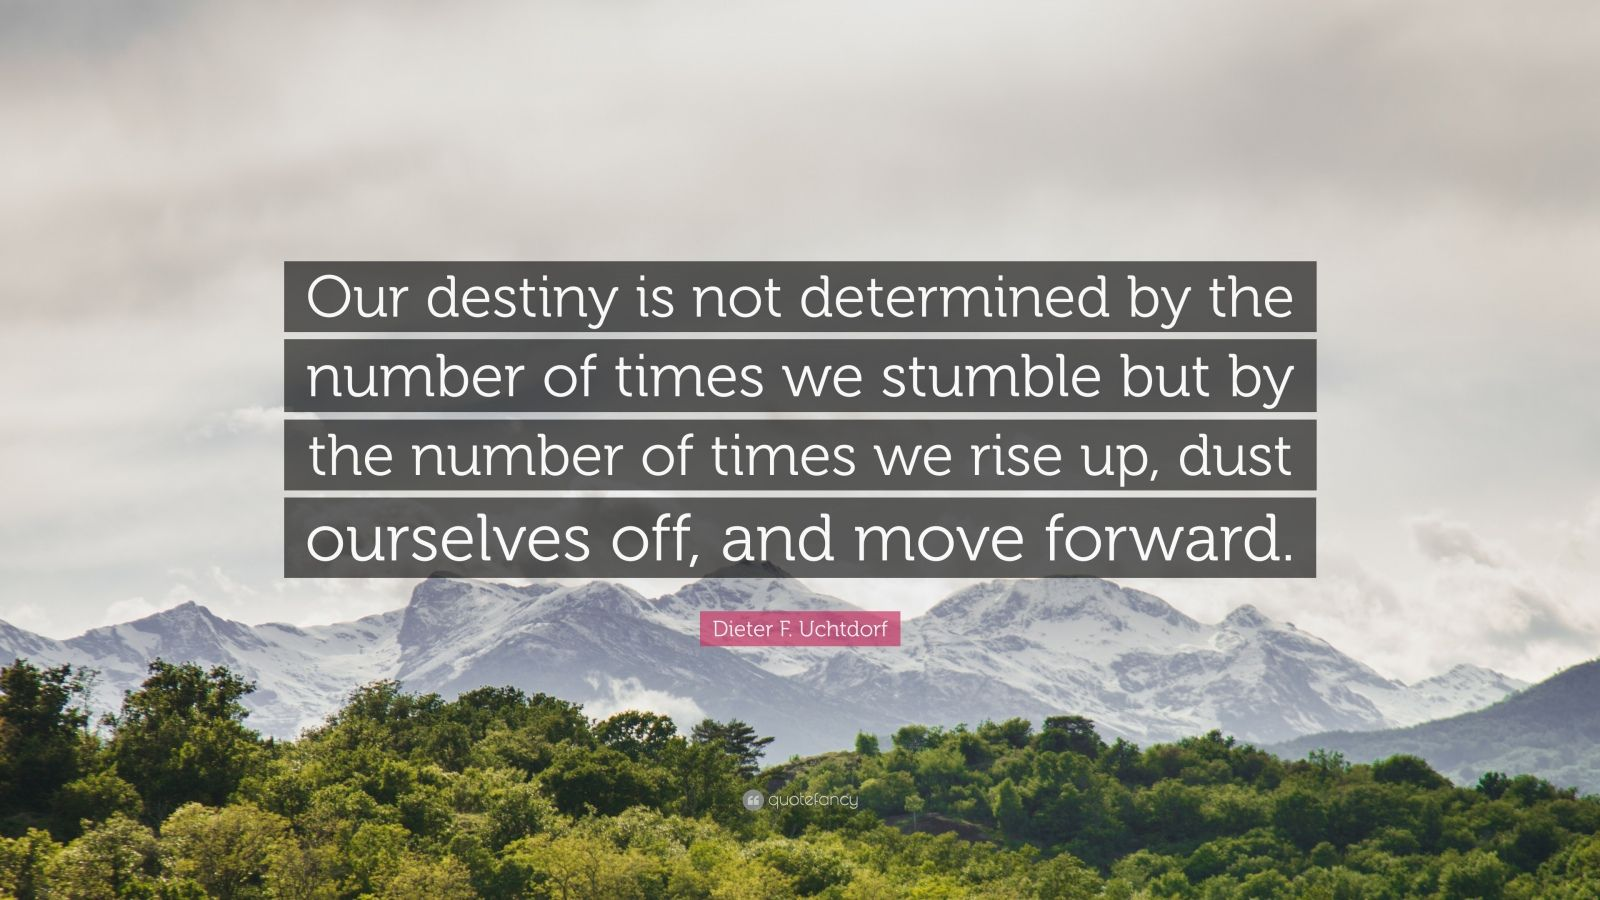 """Dieter F. Uchtdorf Quote: """"Our destiny is not determined by the number of times we stumble but by the number of times we rise up, dust ourselves off, and move forward."""""""